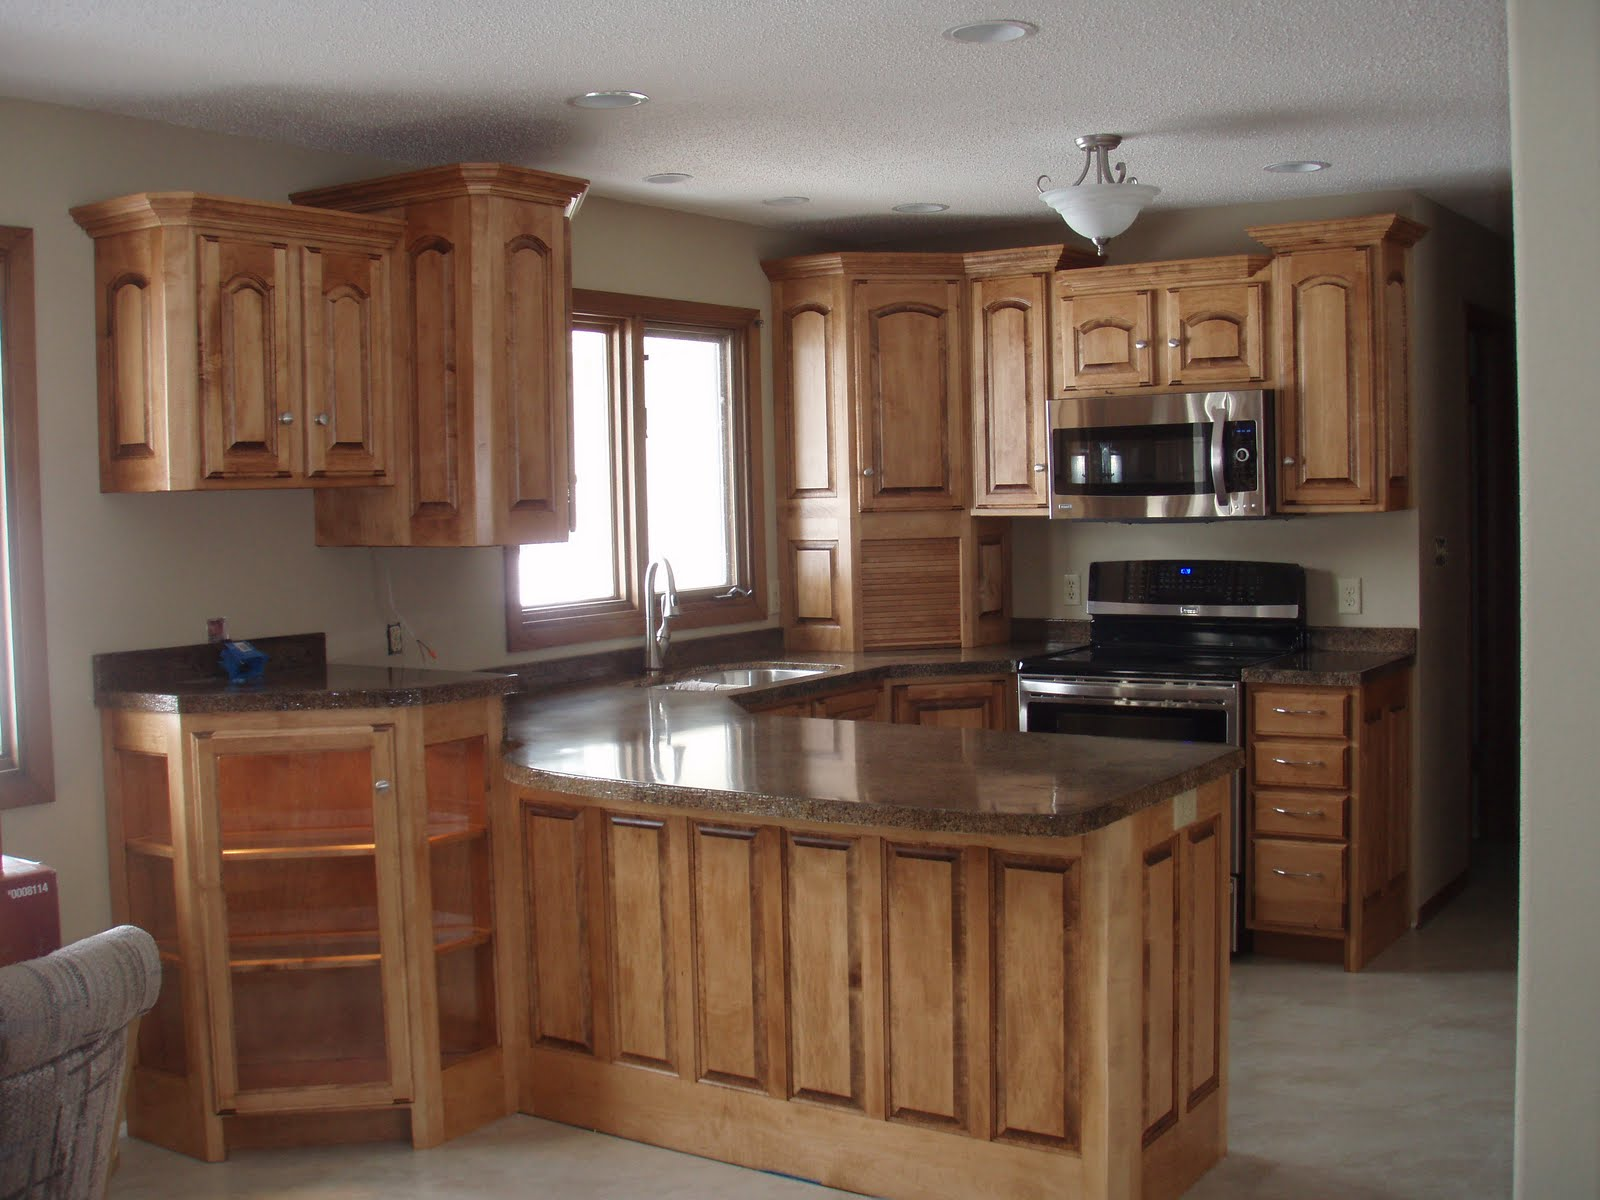 BACKER'S WOODWORKING: Maple Cabinets with Granicrete ... on Countertops That Go With Maple Cabinets  id=38234